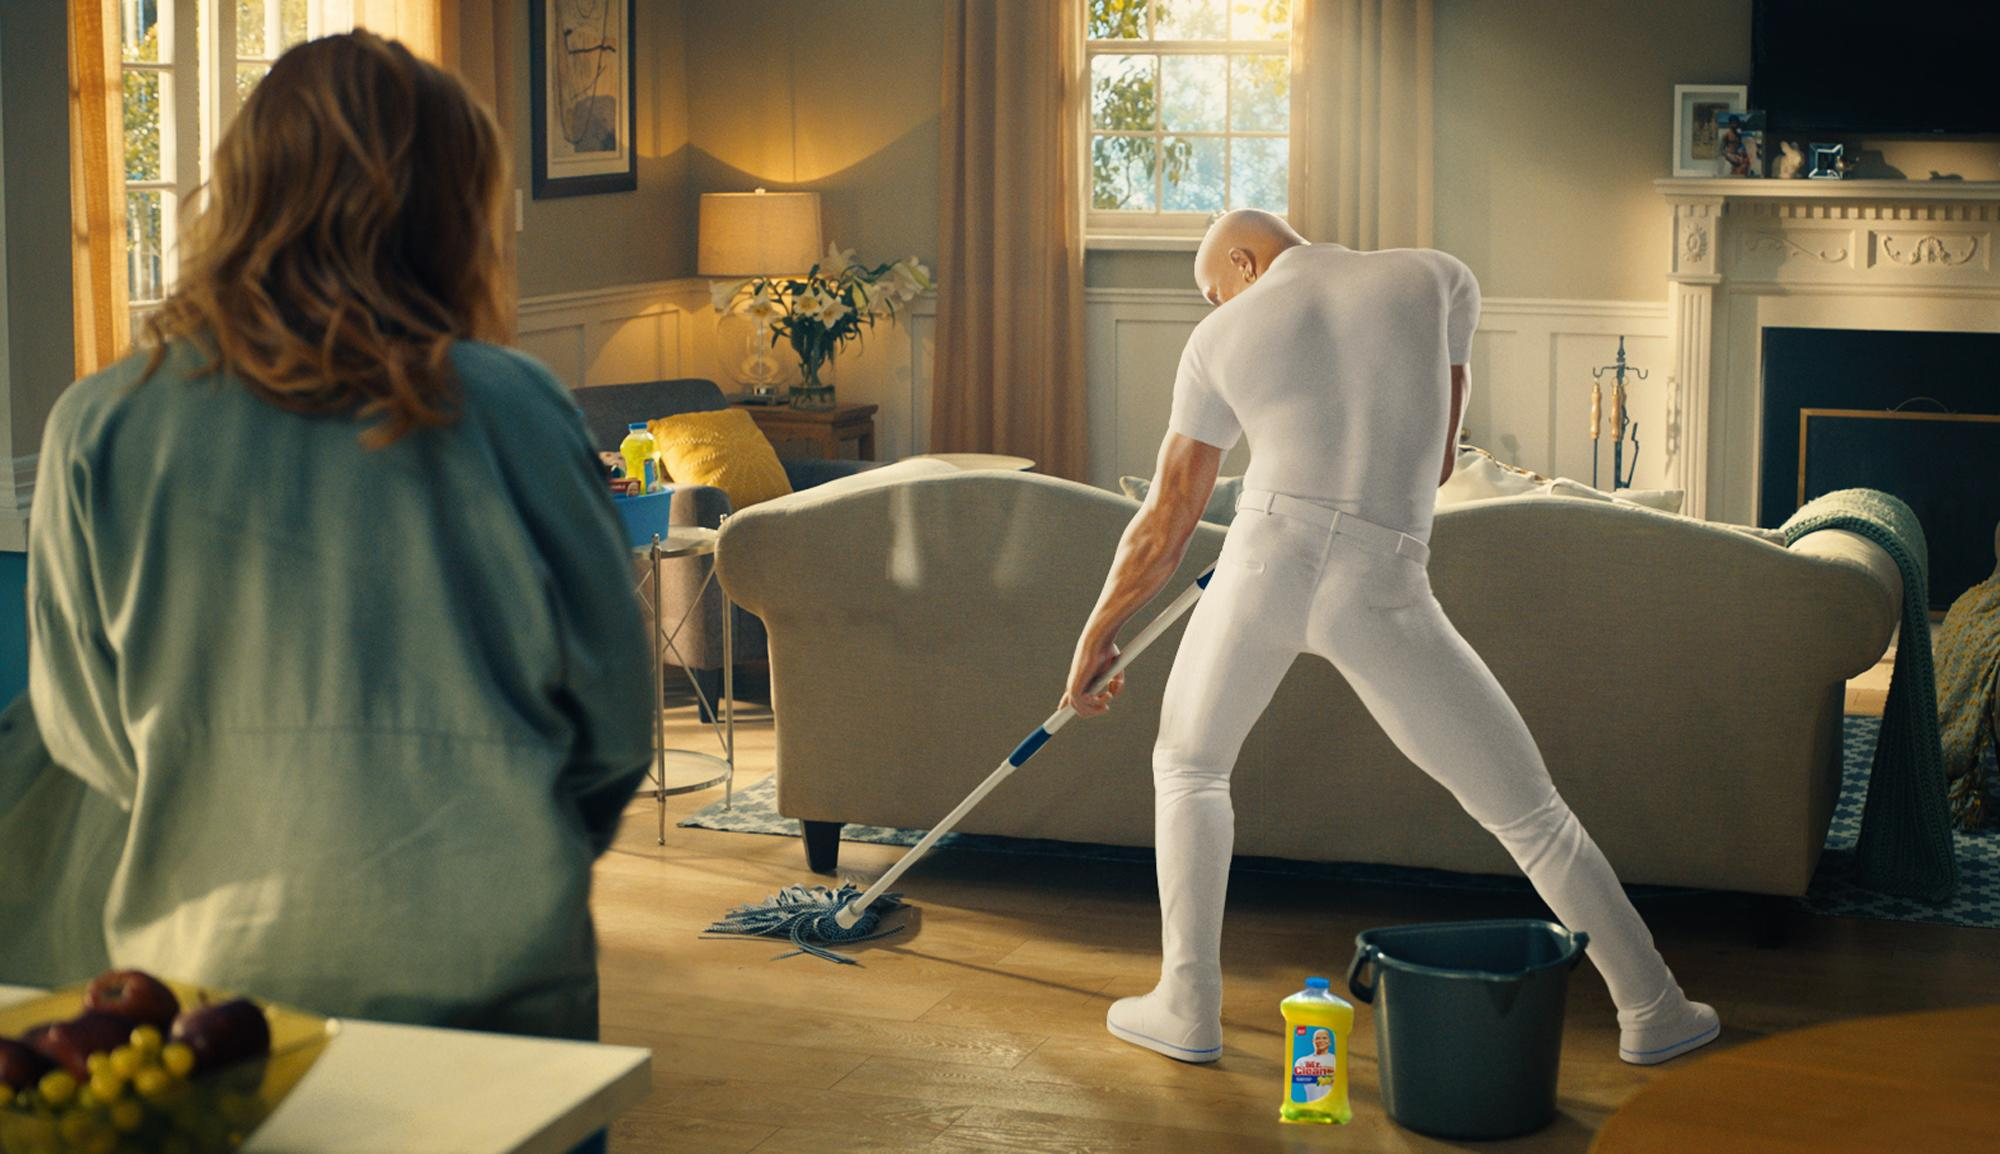 """This image provided by Procter & Gamble shows a still from the company's Mr. Clean """"Cleaner of Your Dreams"""" Super Bowl 51 spot. The New England Patriots defeated the Atlanta Falcons, 34-28, in overtime, in Super Bowl 51, on Sunday, Feb. 5, 2017. (Procter & Gamble via AP)"""